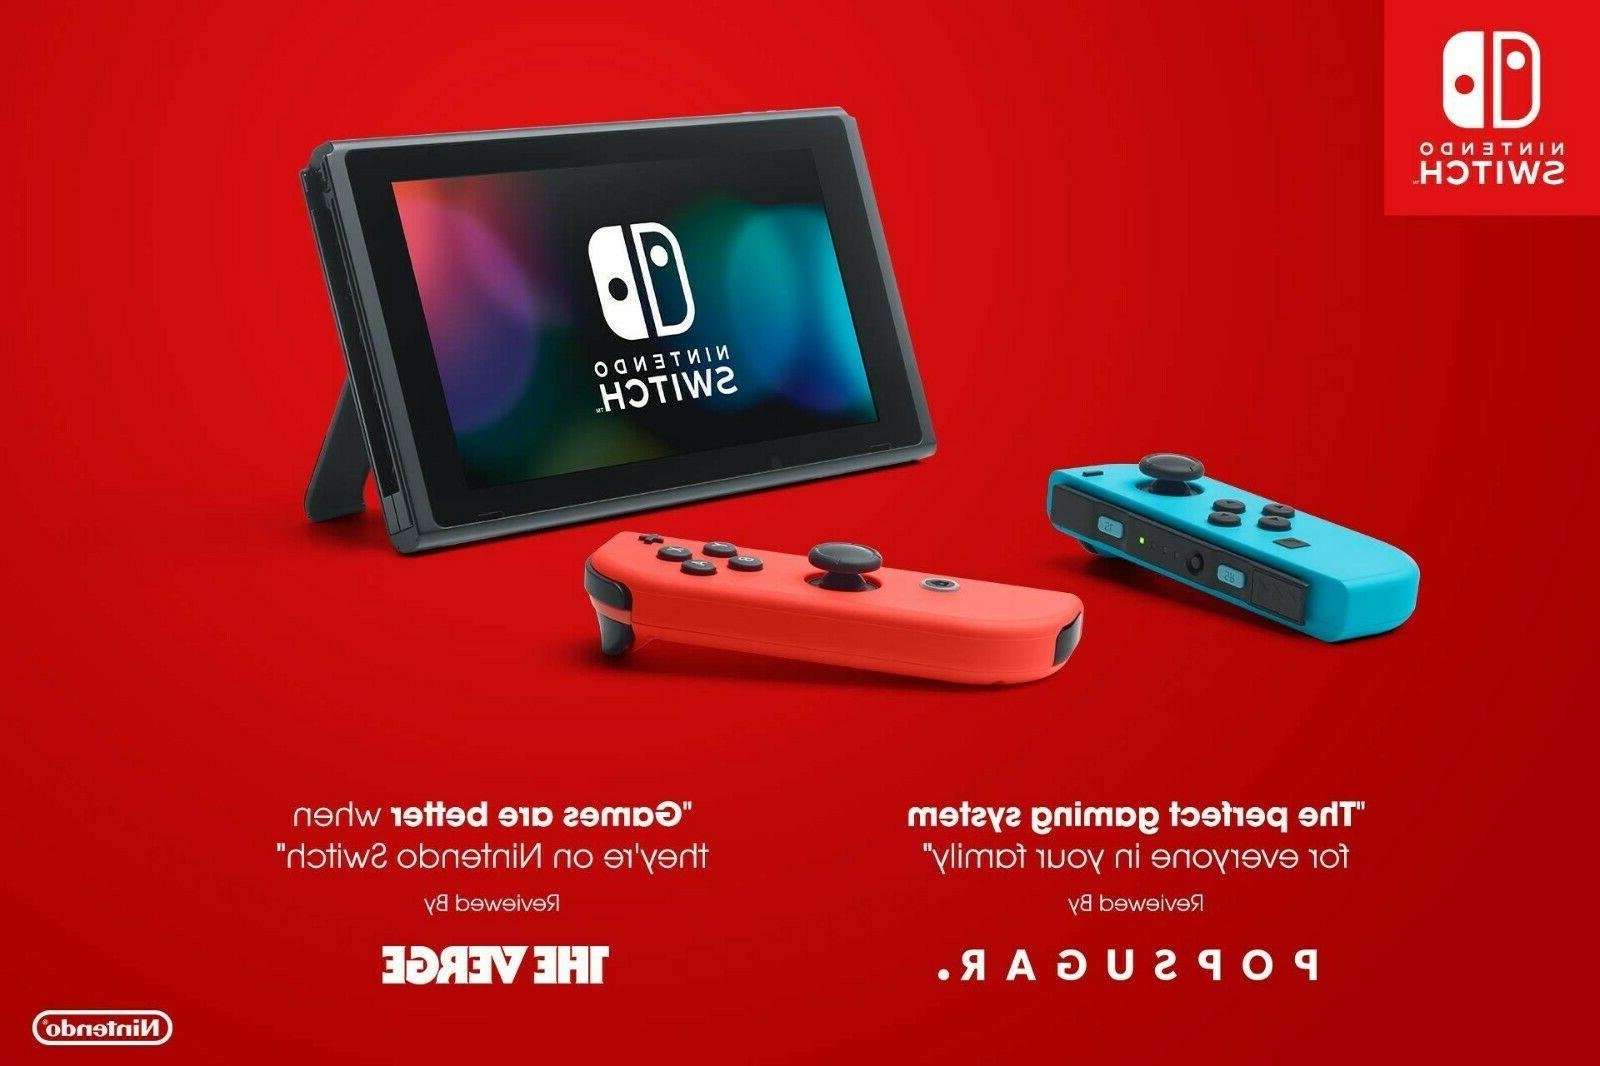 Nintendo Neon Joy-Con and Smash Bros